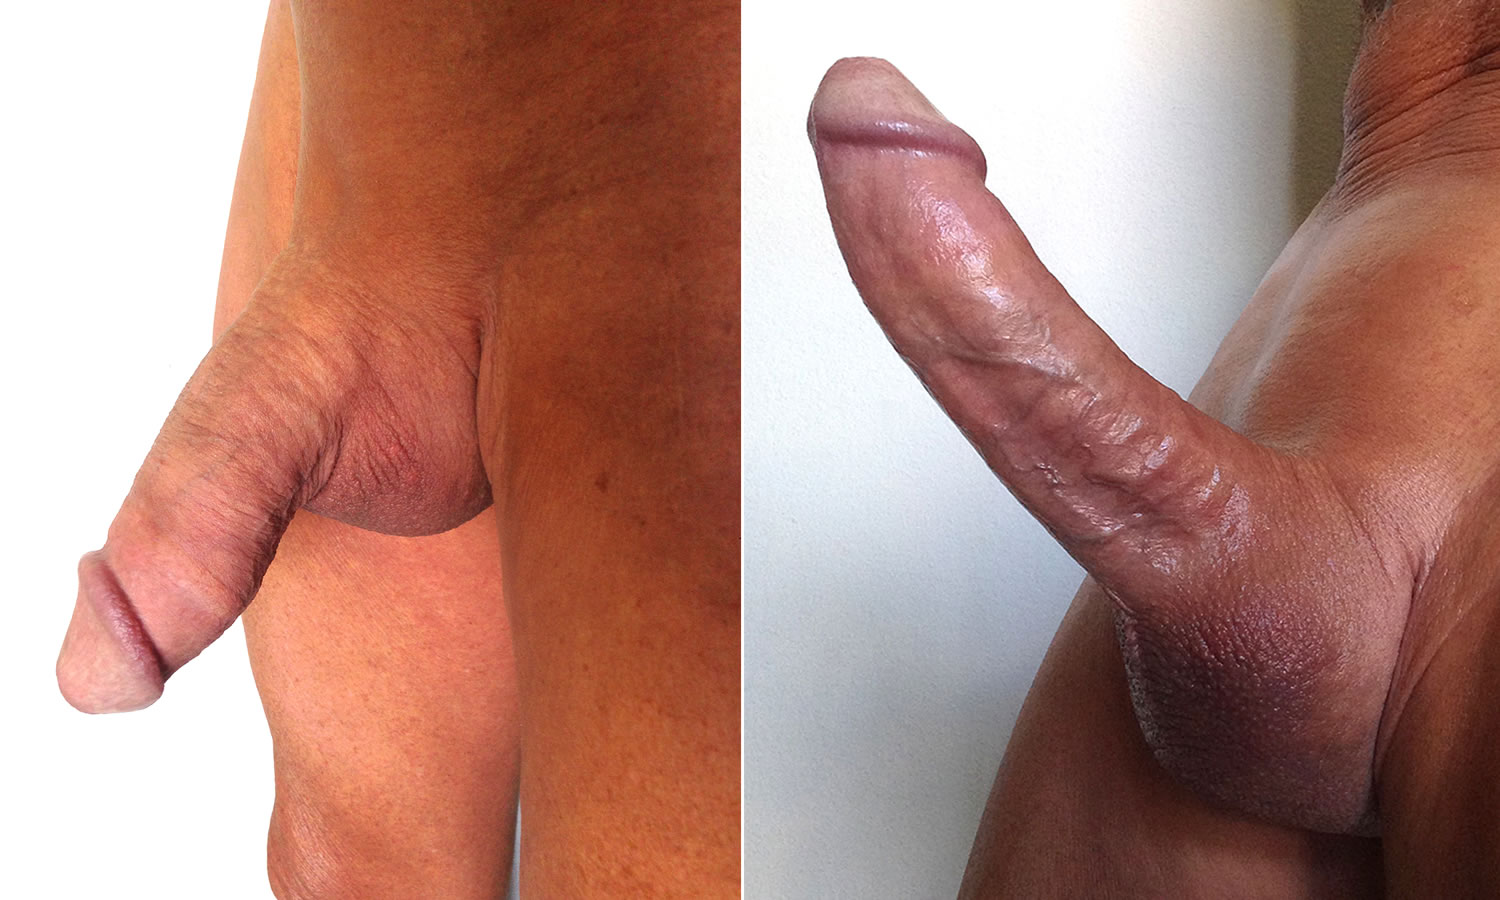 Free Homo Sex Clips If You Get Off On Loads Of Piss, Uncircumcised